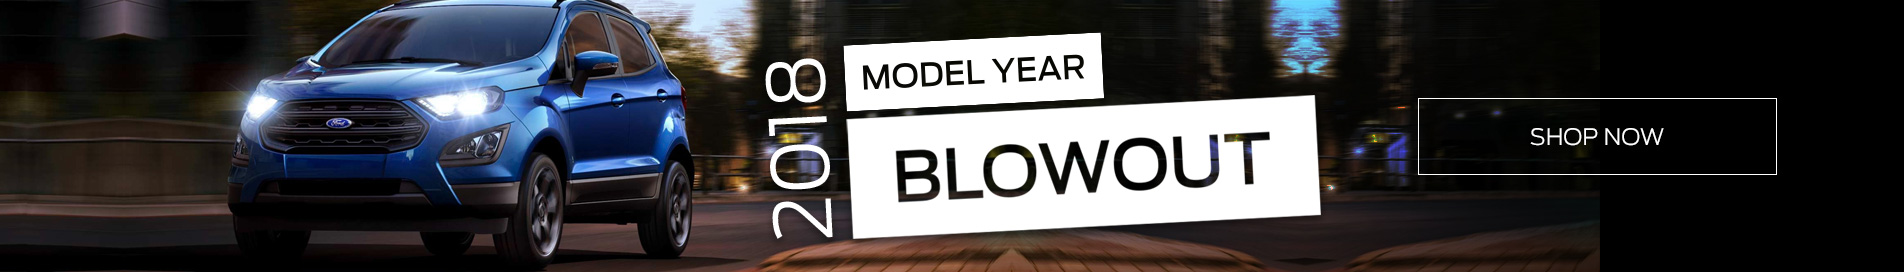 2018 Model Year Blowout Desktop